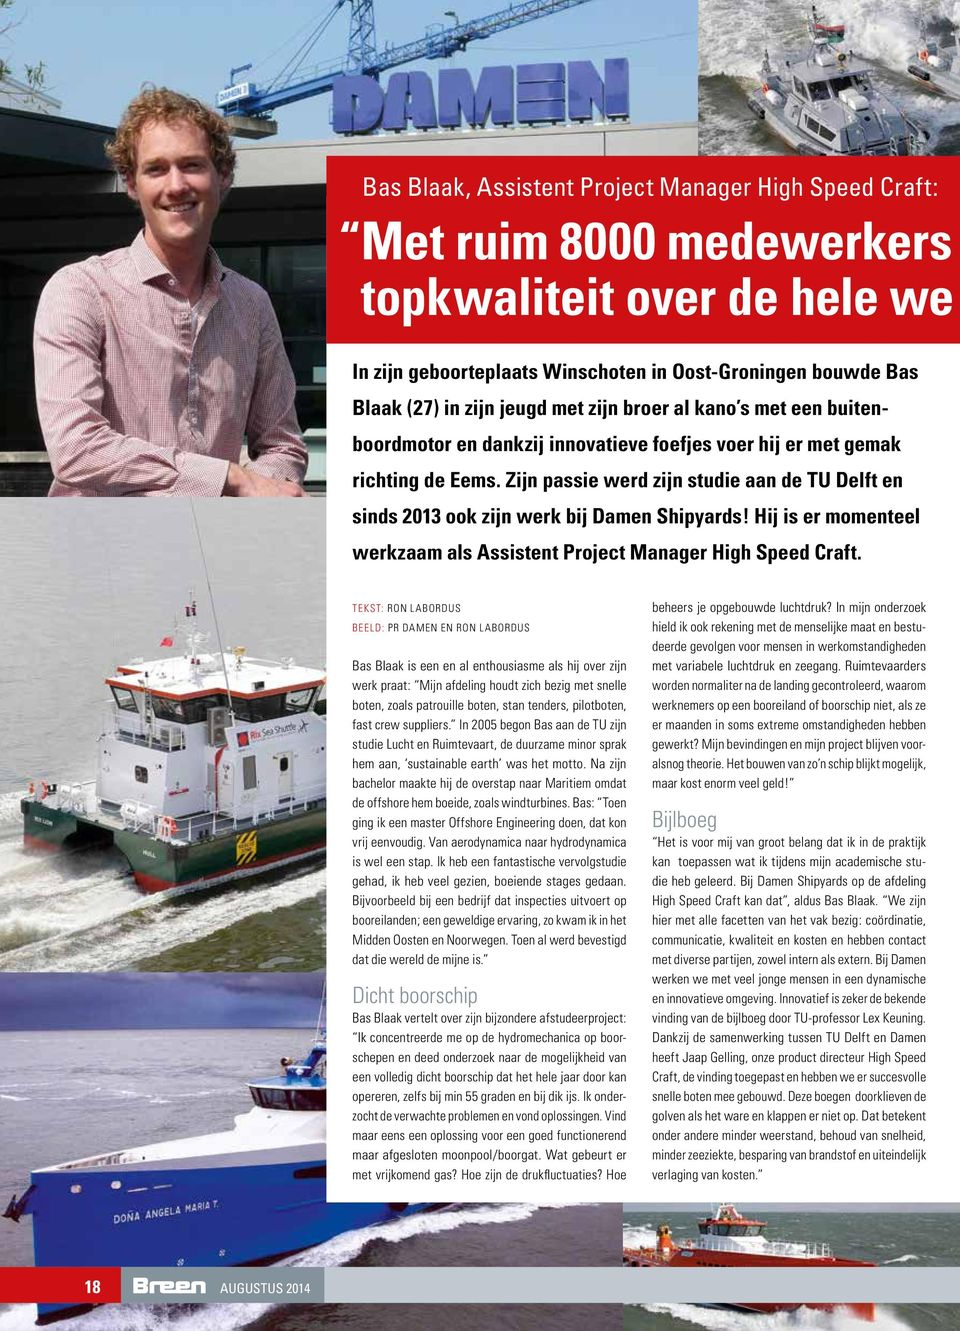 Zijn passie werd zijn studie aan de TU Delft en sinds 2013 ook zijn werk bij Damen Shipyards! Hij is er momenteel werkzaam als Assistent Project Manager High Speed Craft.